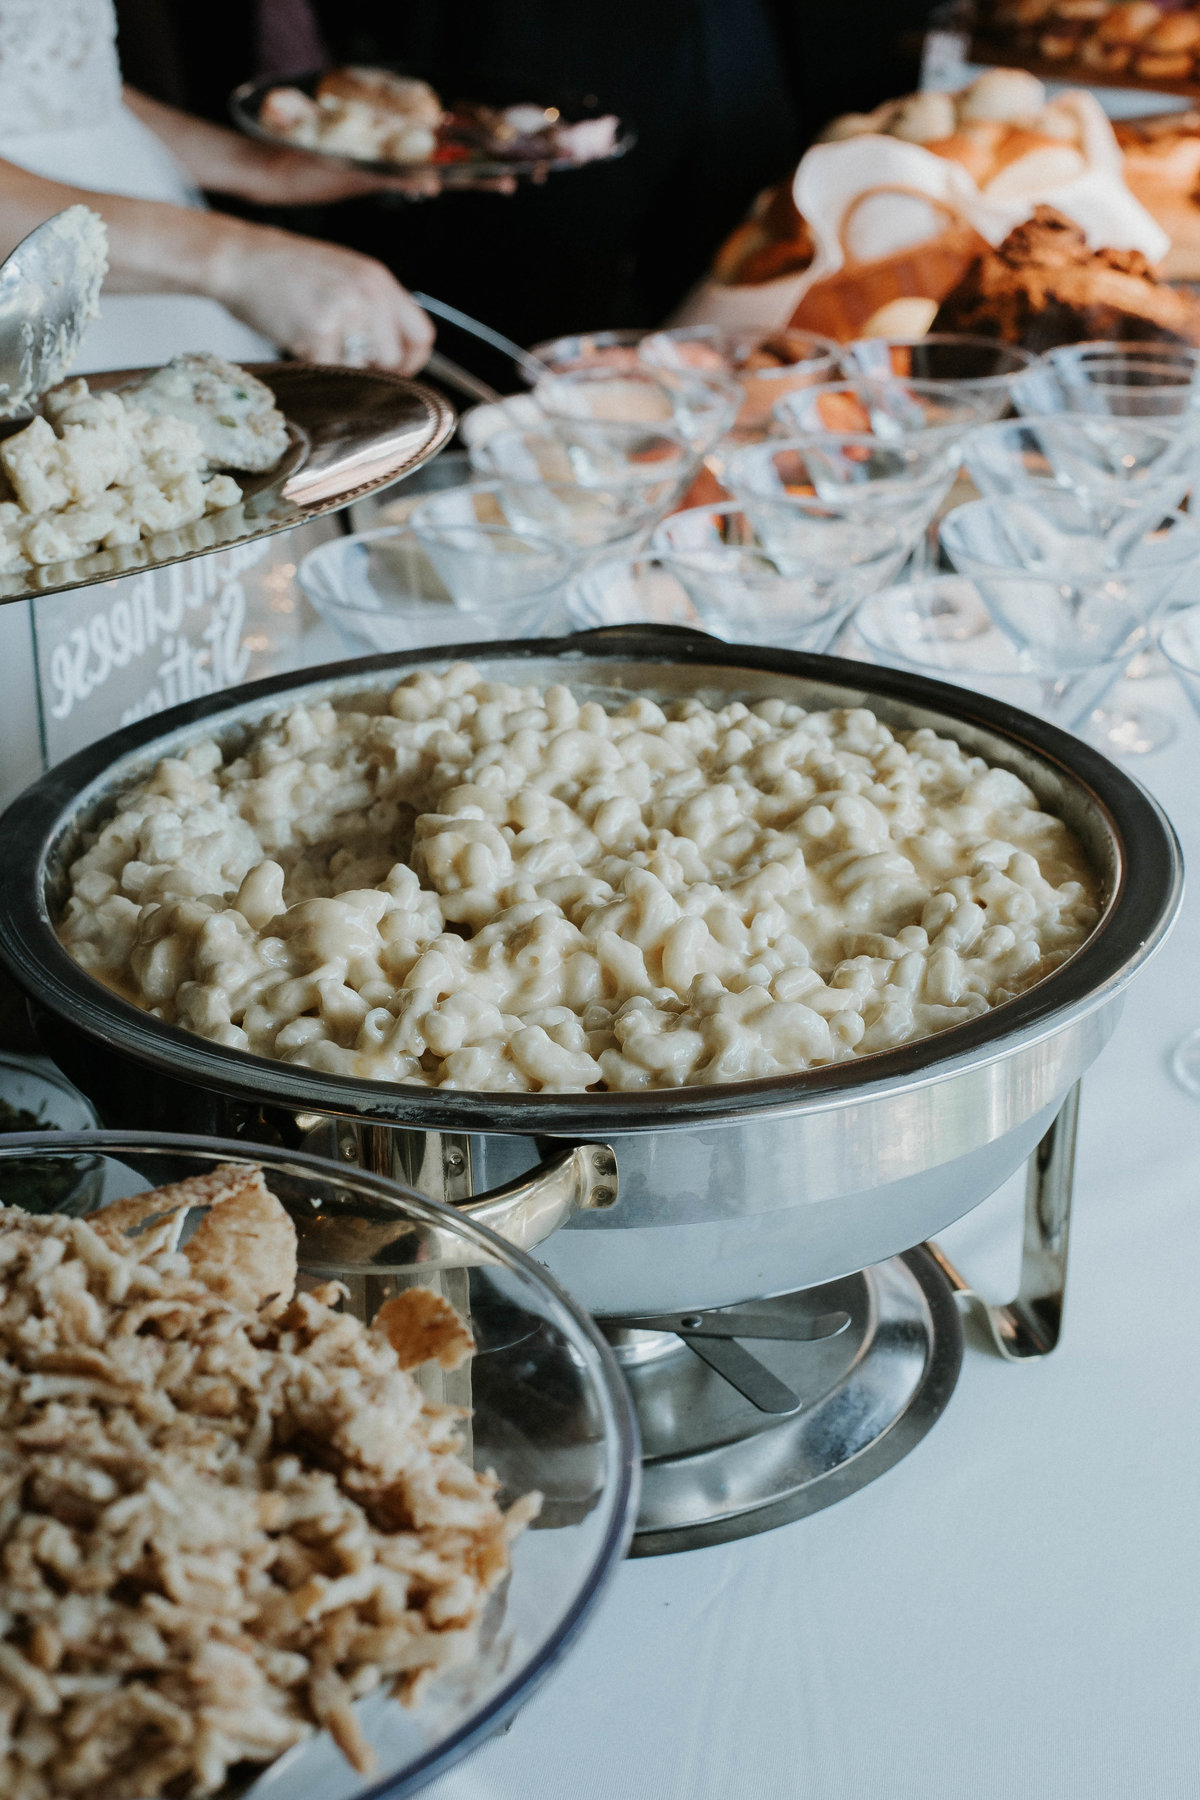 Classic-Catering-Refinery-Culpeper-Wedding-Photo-August-2019-0250